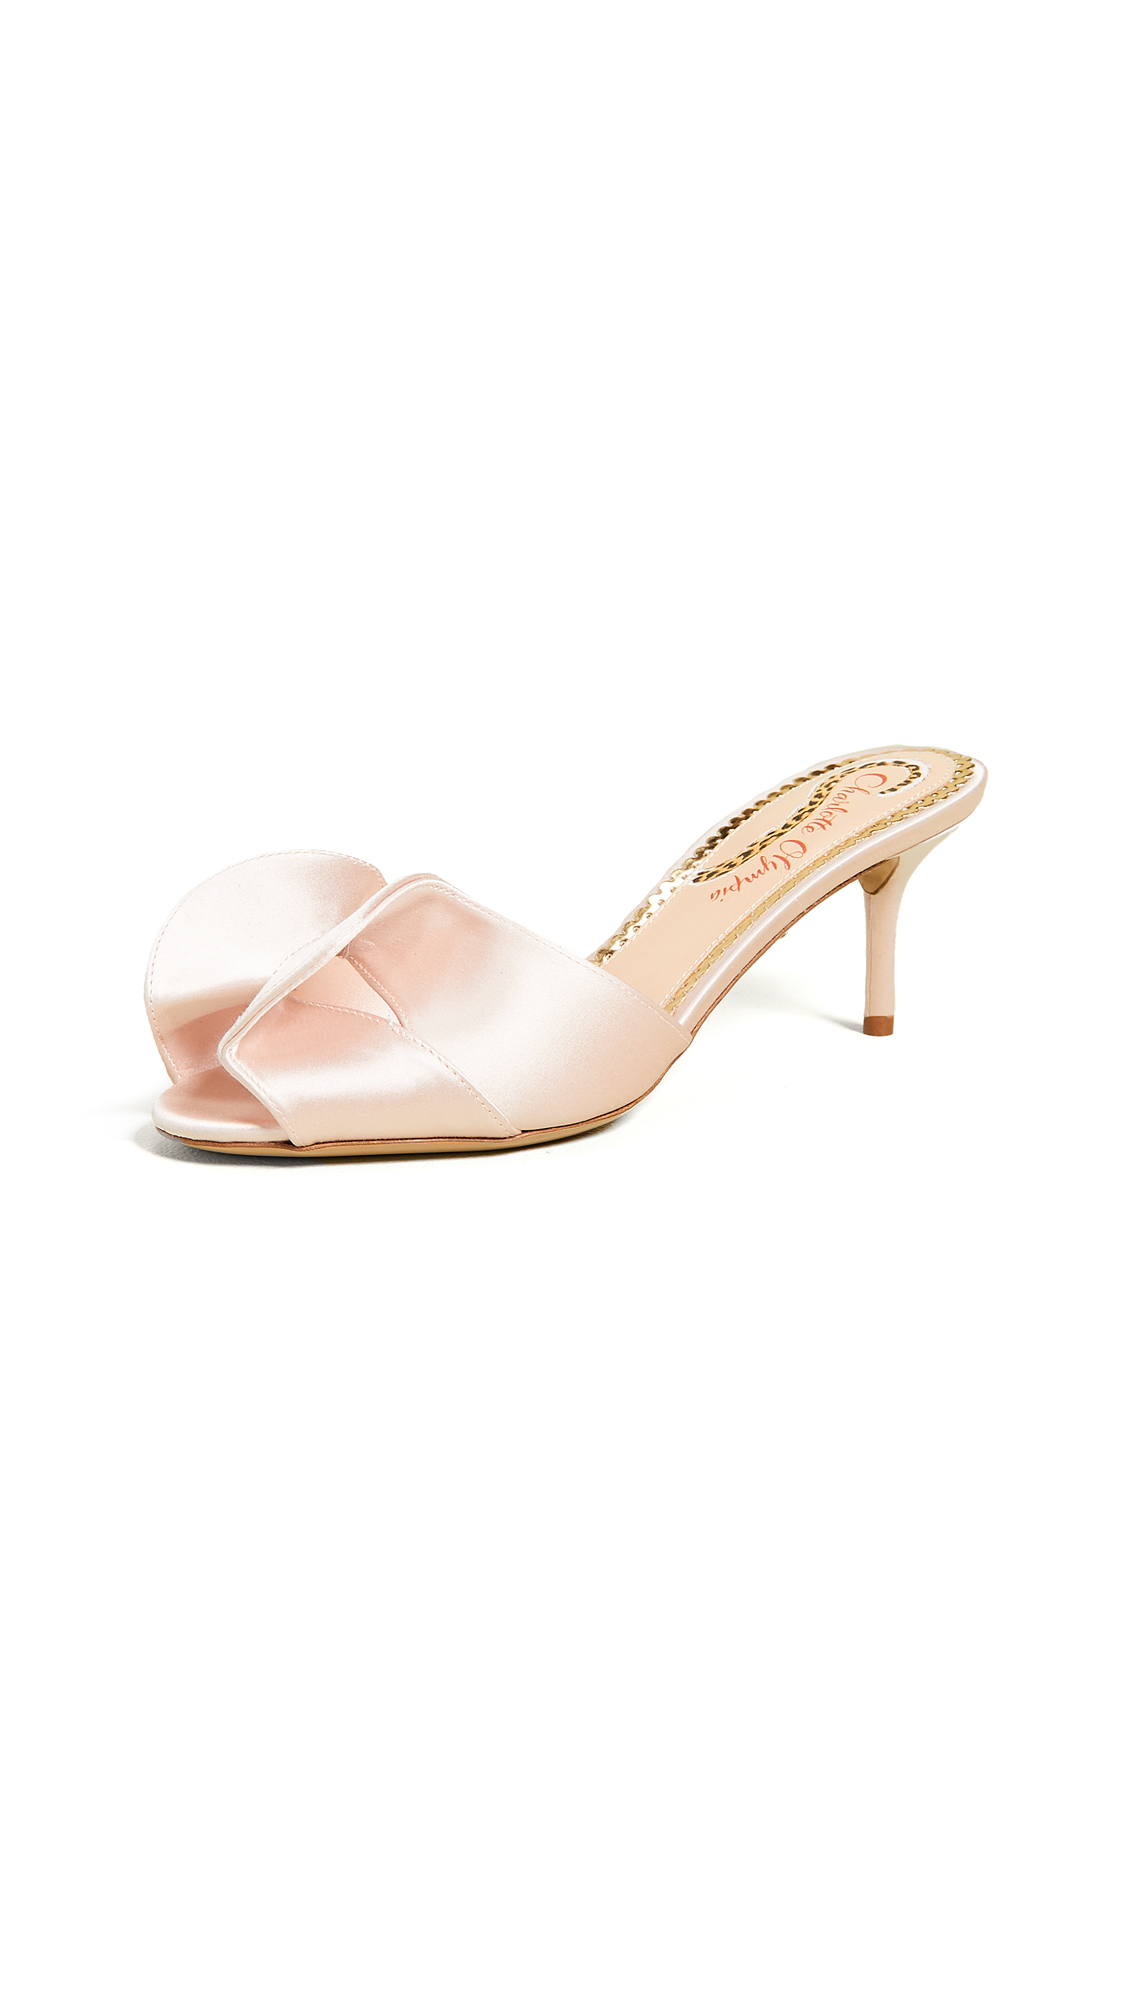 Charlotte Olympia Drew Slide Sandals - Pale Pink